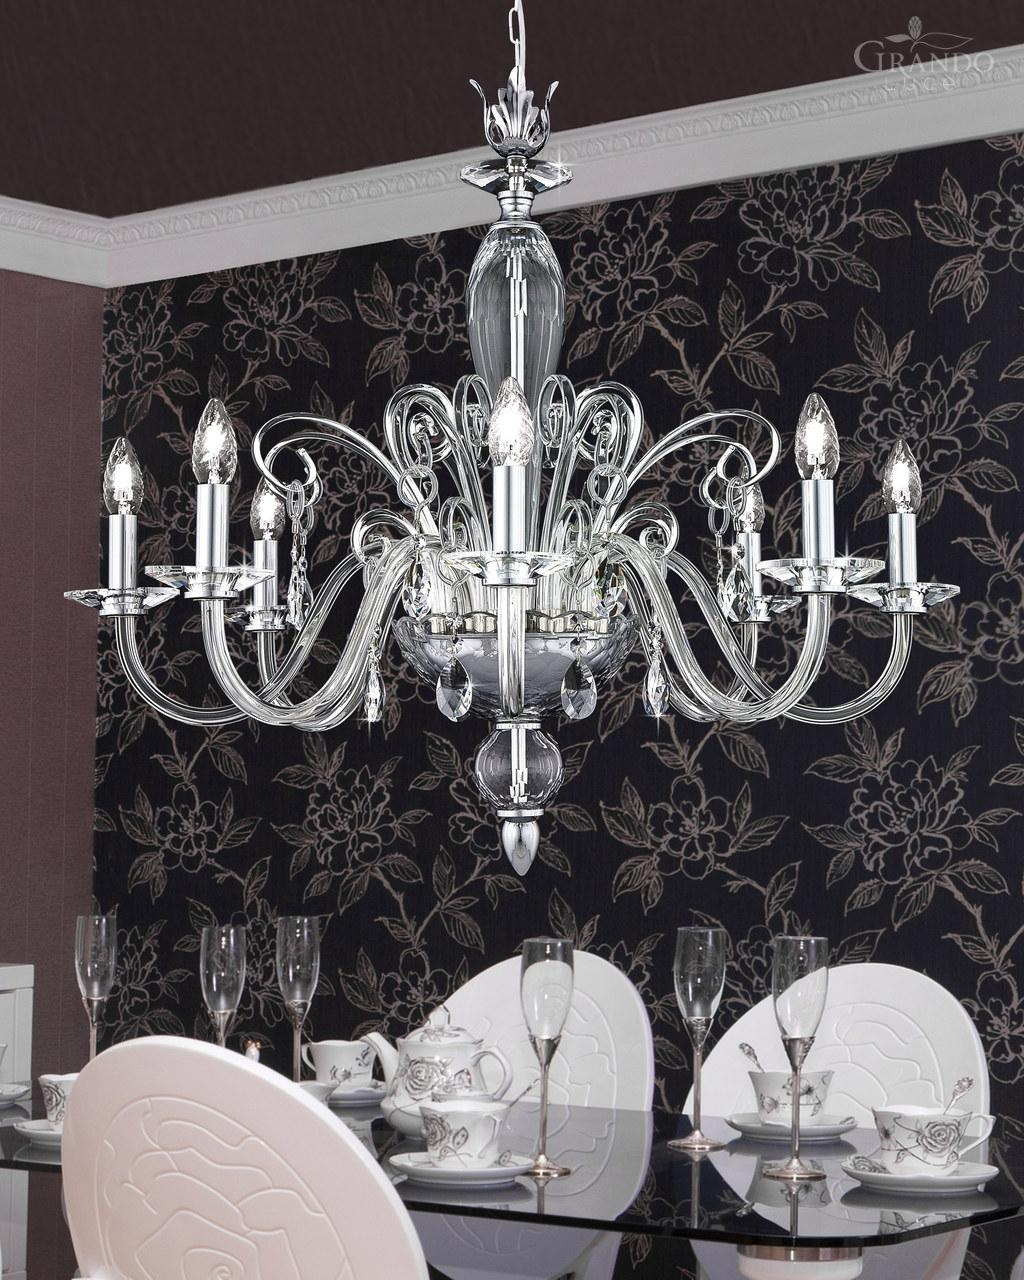 1208 Ch Chrome Crystal Chandelier With Swarovski Elements Pertaining To Crystal Chrome Chandelier (#2 of 12)